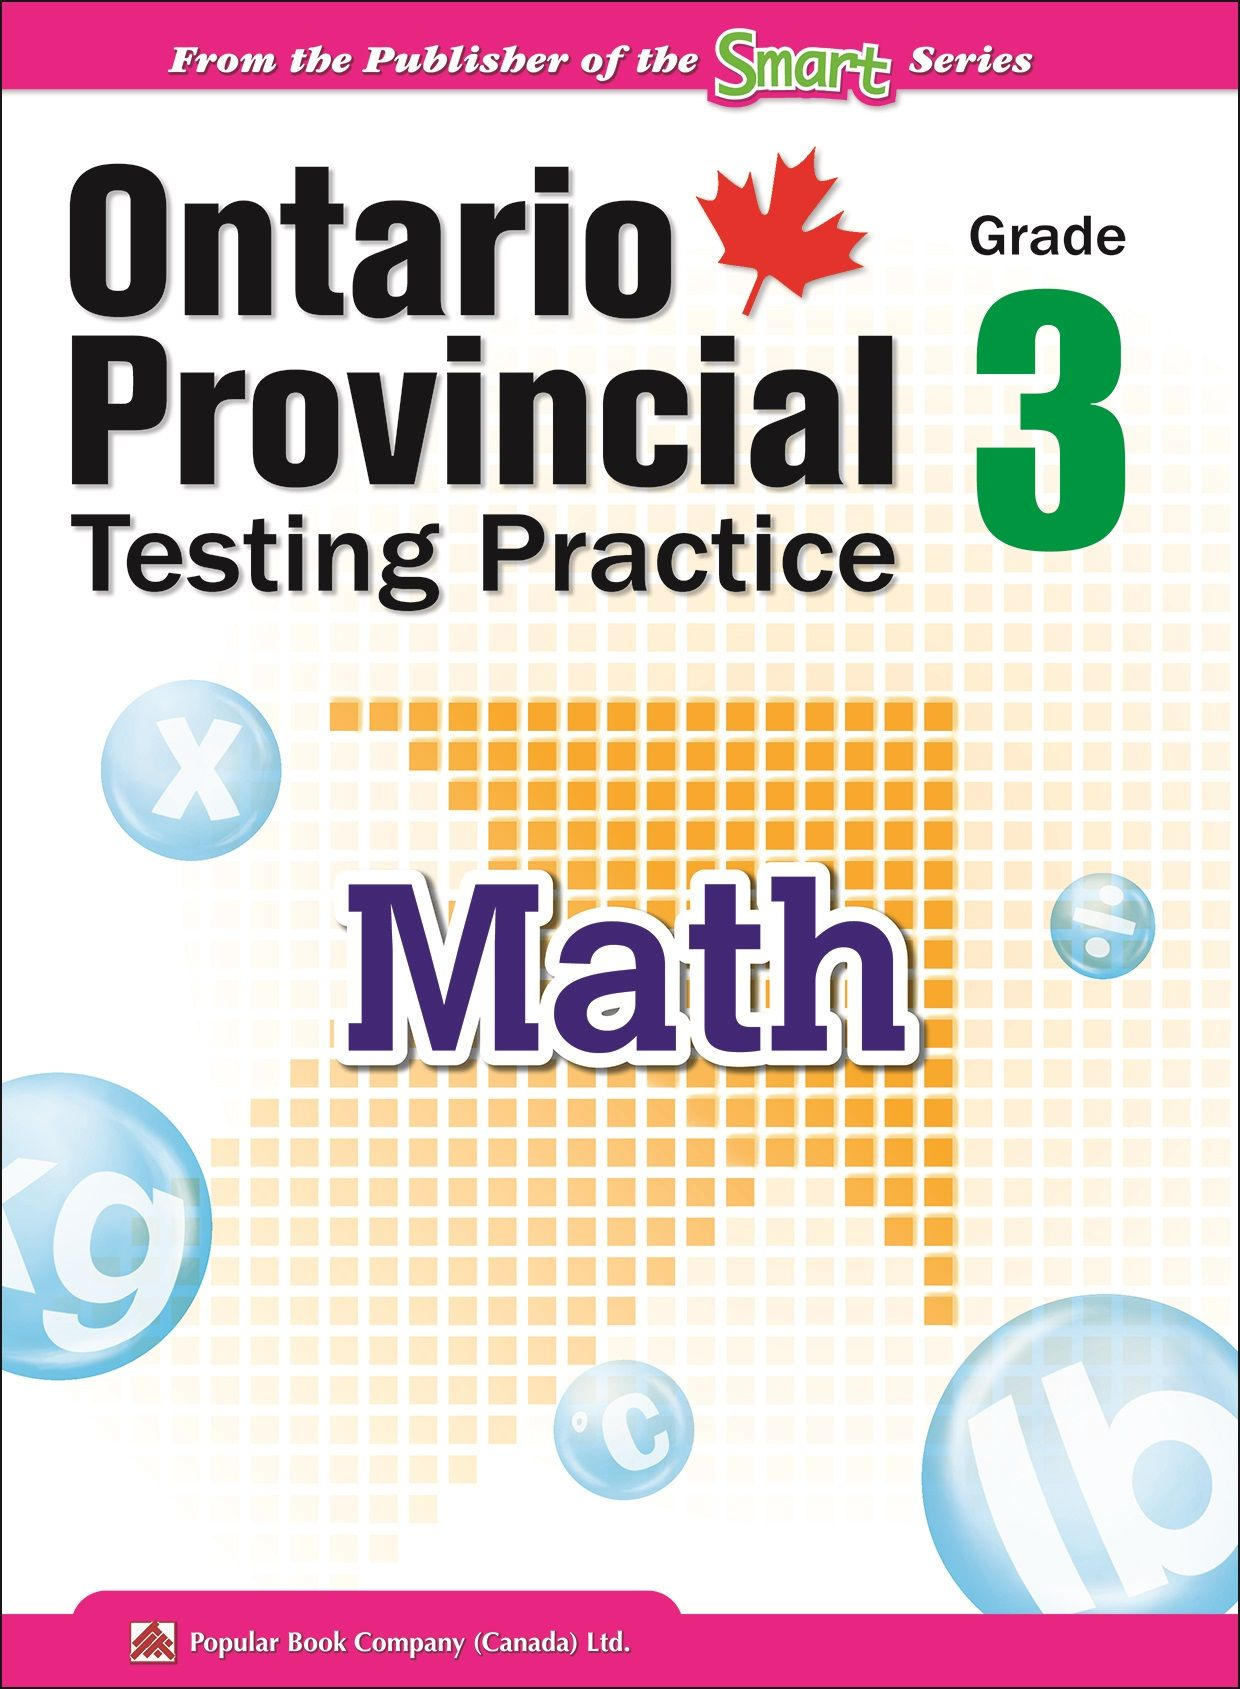 Download The Free Sample Pages From Ontario Provincial